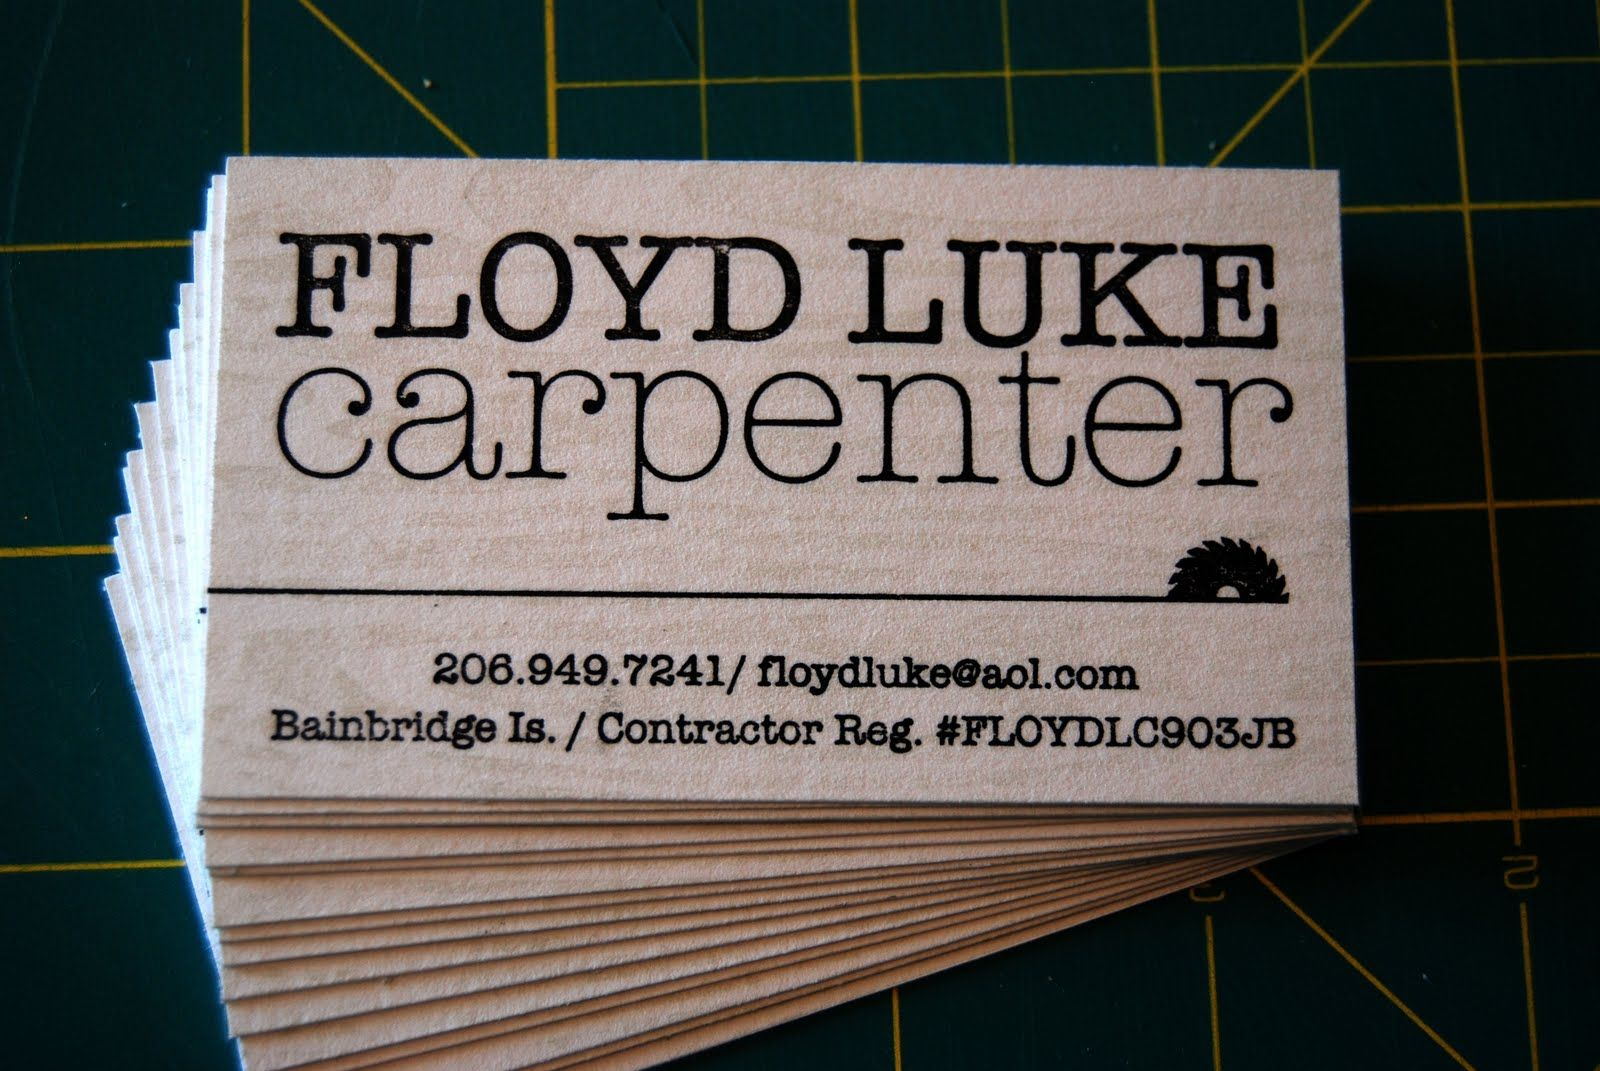 Carpenter business cards google search office pinterest carpenter business cards google search fbccfo Choice Image